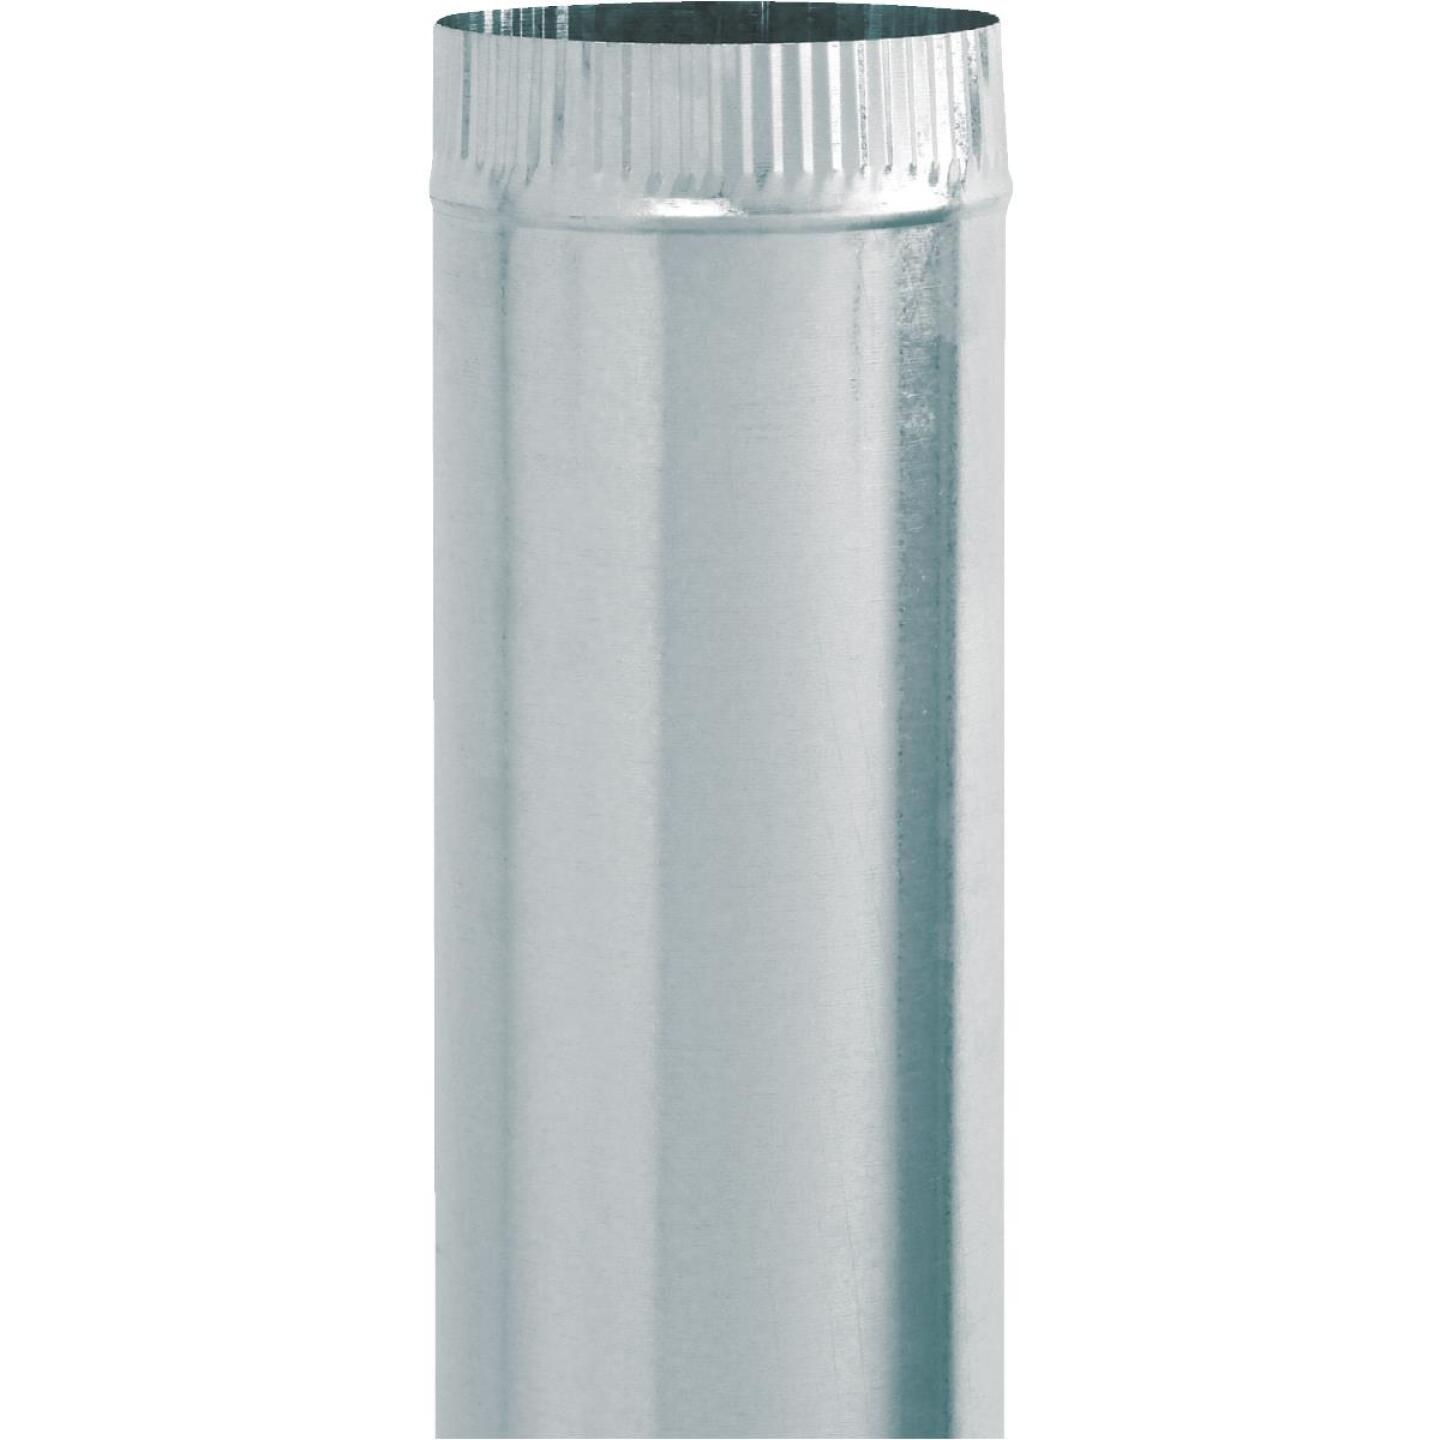 Imperial 28 Ga. 3 In. x 24 In. Galvanized Furnace Pipe Image 1